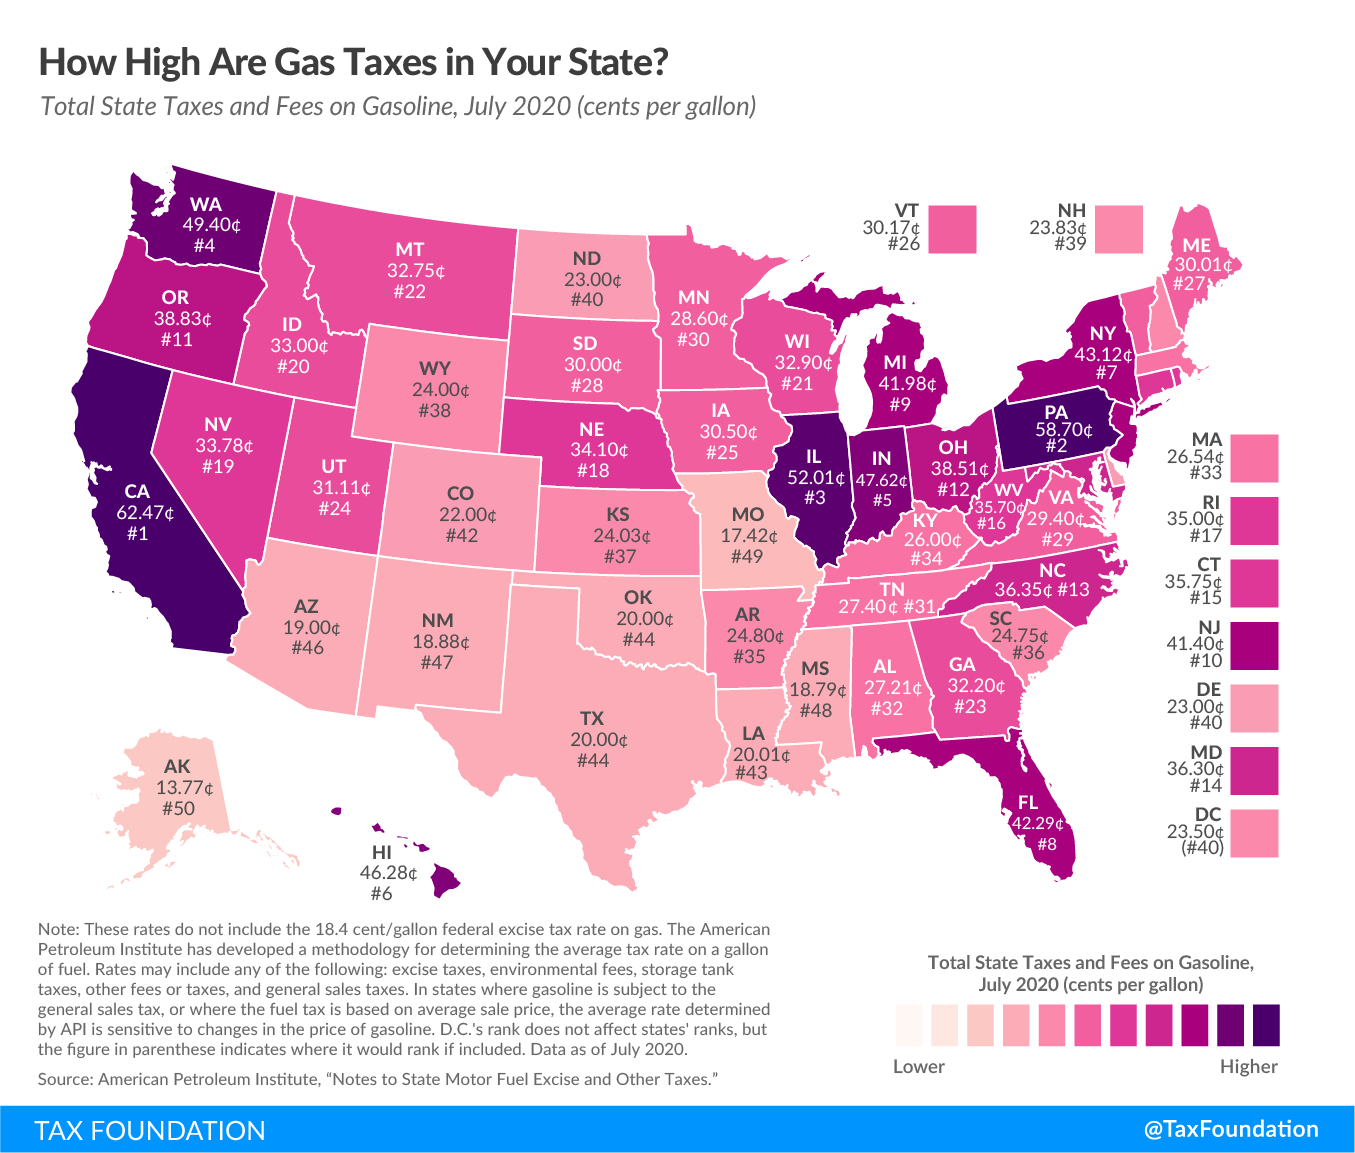 2020 state gas tax rates, 2020 state fuel excise taxes, 2020 state gas tax rates by state, 2020 gas taxes